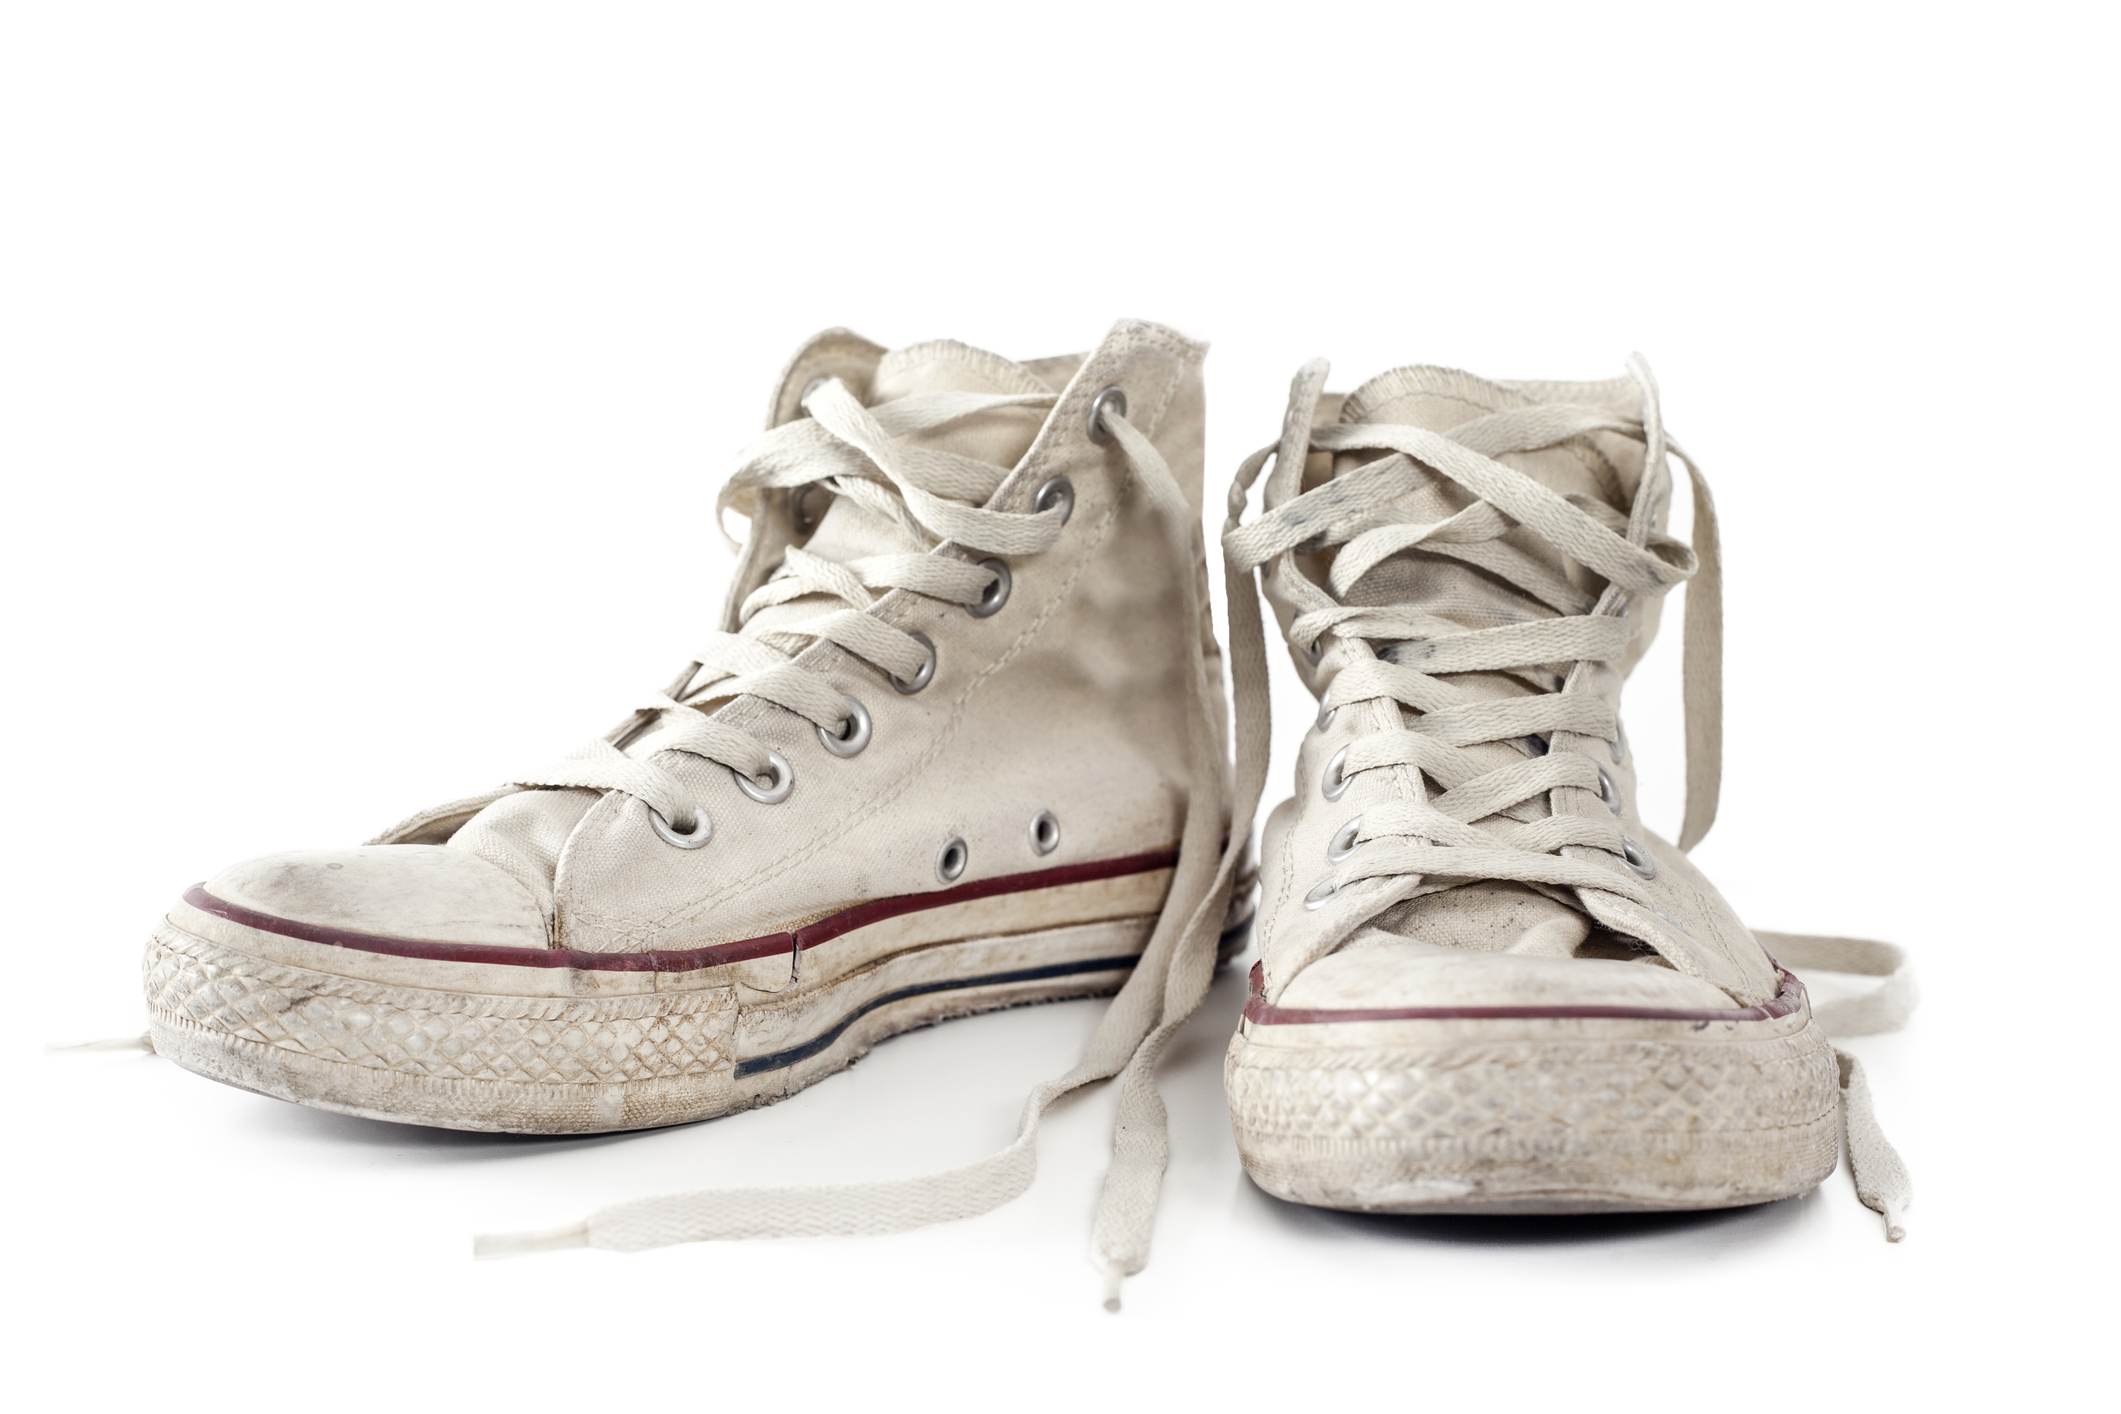 to Clean White Shoes with Baking Soda